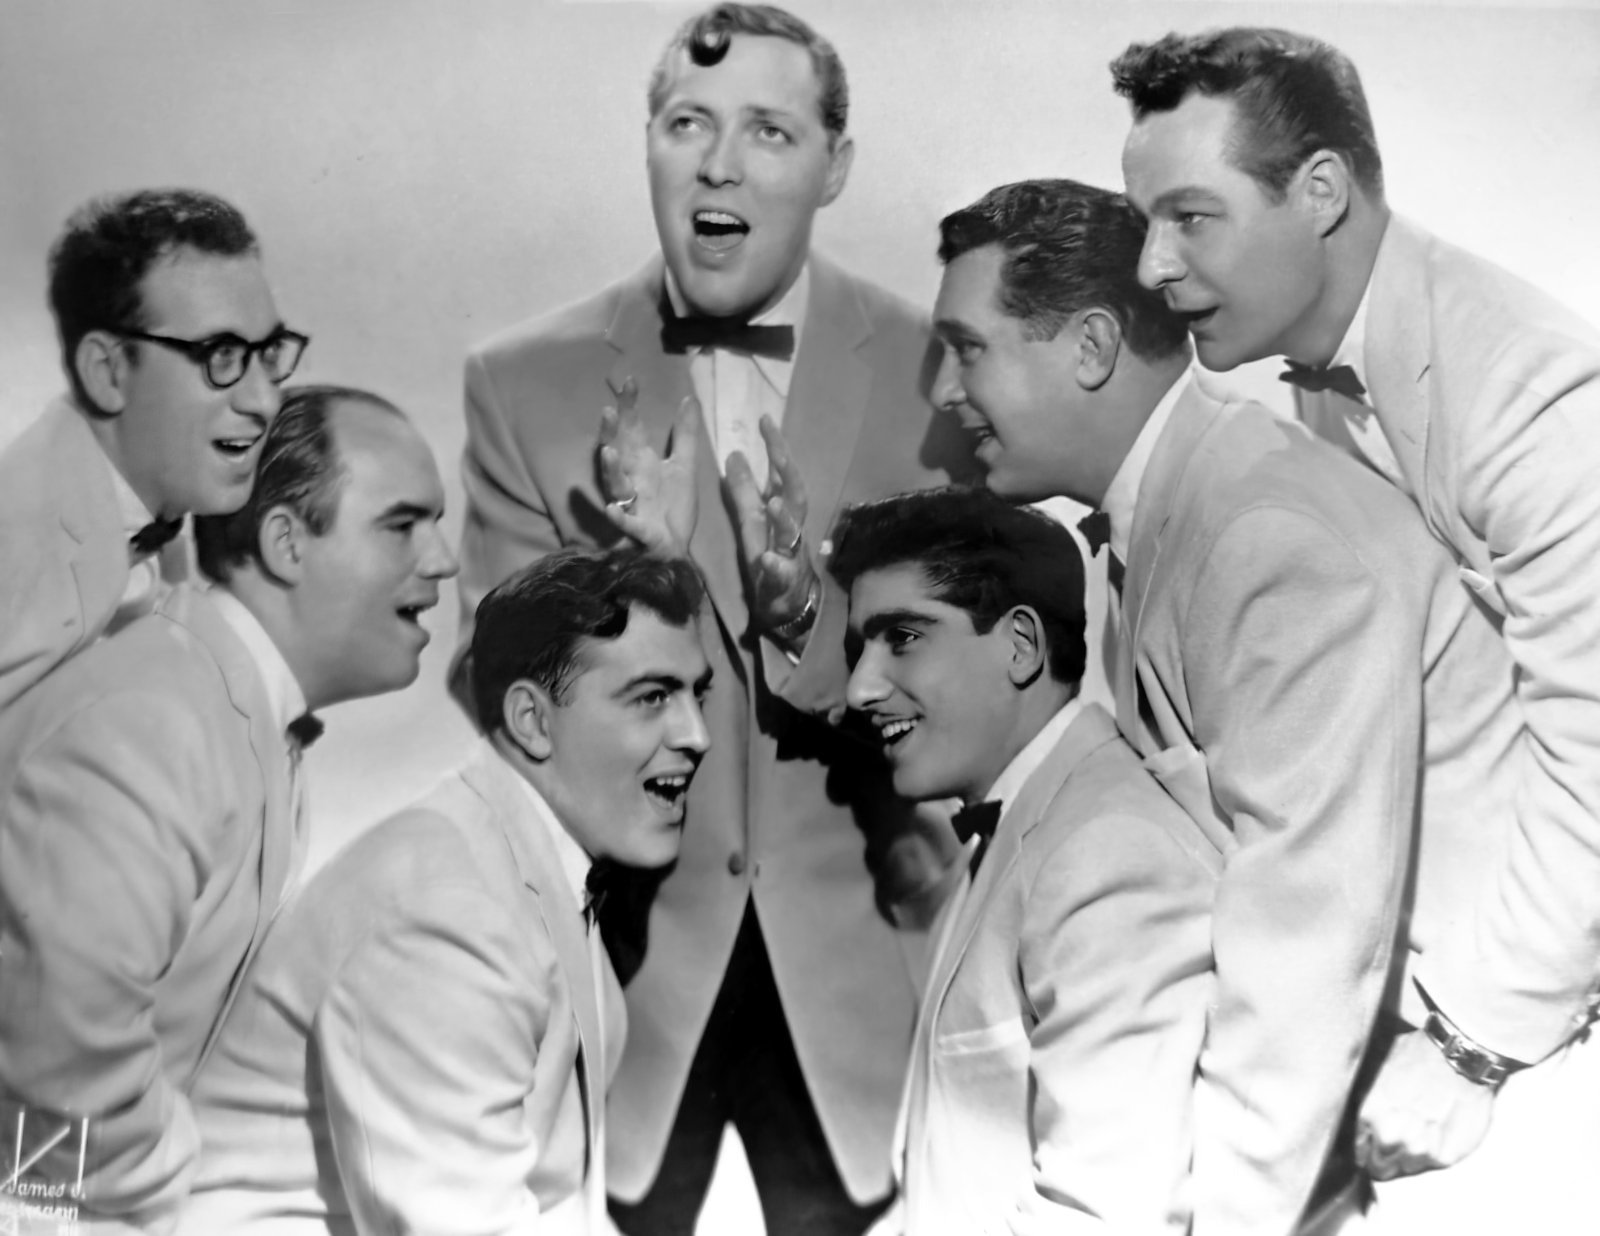 Bill Haley and His Comets - Vintage 1950s rock band